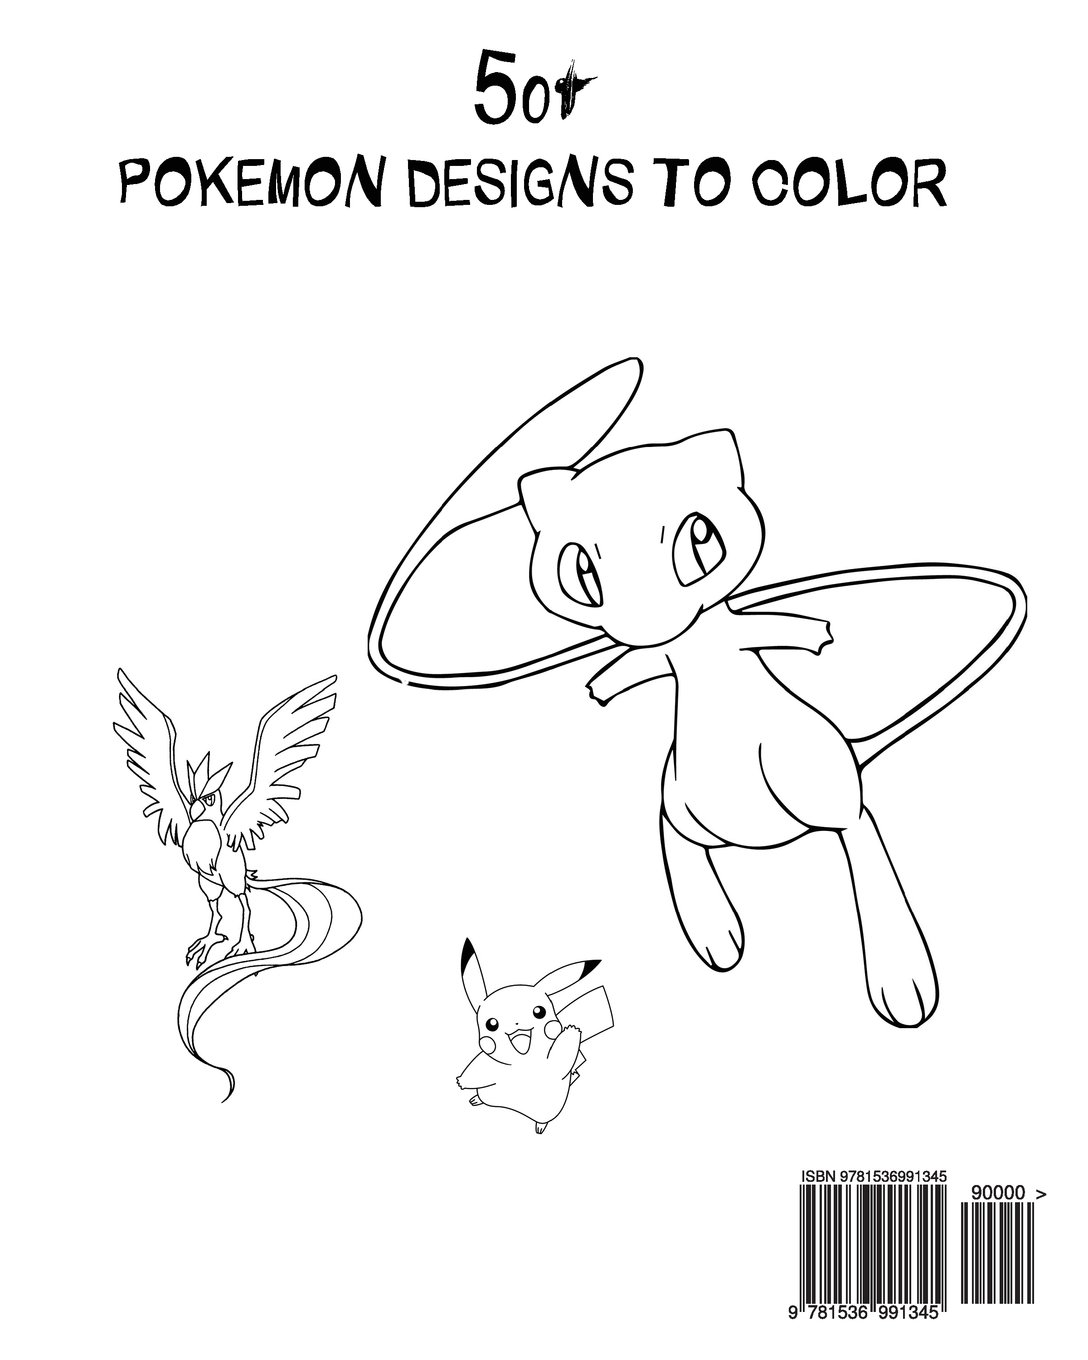 Amazon.com: Adult Coloring Book Designs: Stress Relief Coloring Book:  POKEMON Designs for Coloring Stress Relieving - Inspire Creativity and  Relaxation of ...